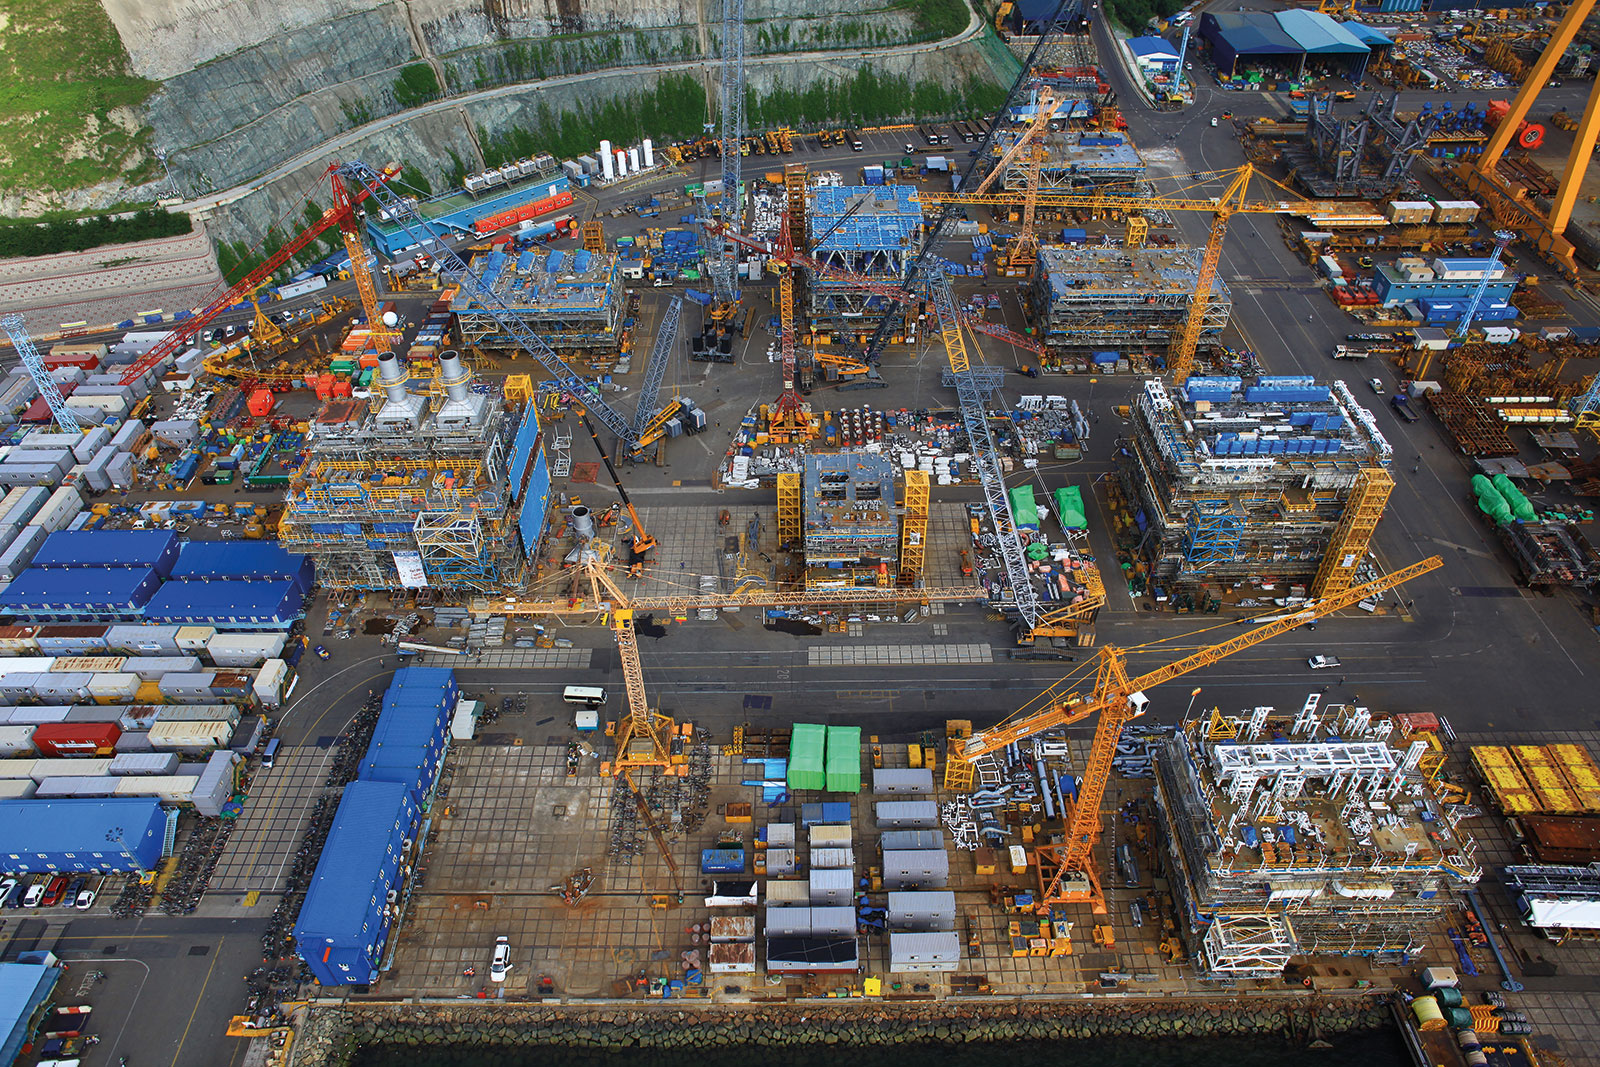 Icthys LNG project facilities, Australia.